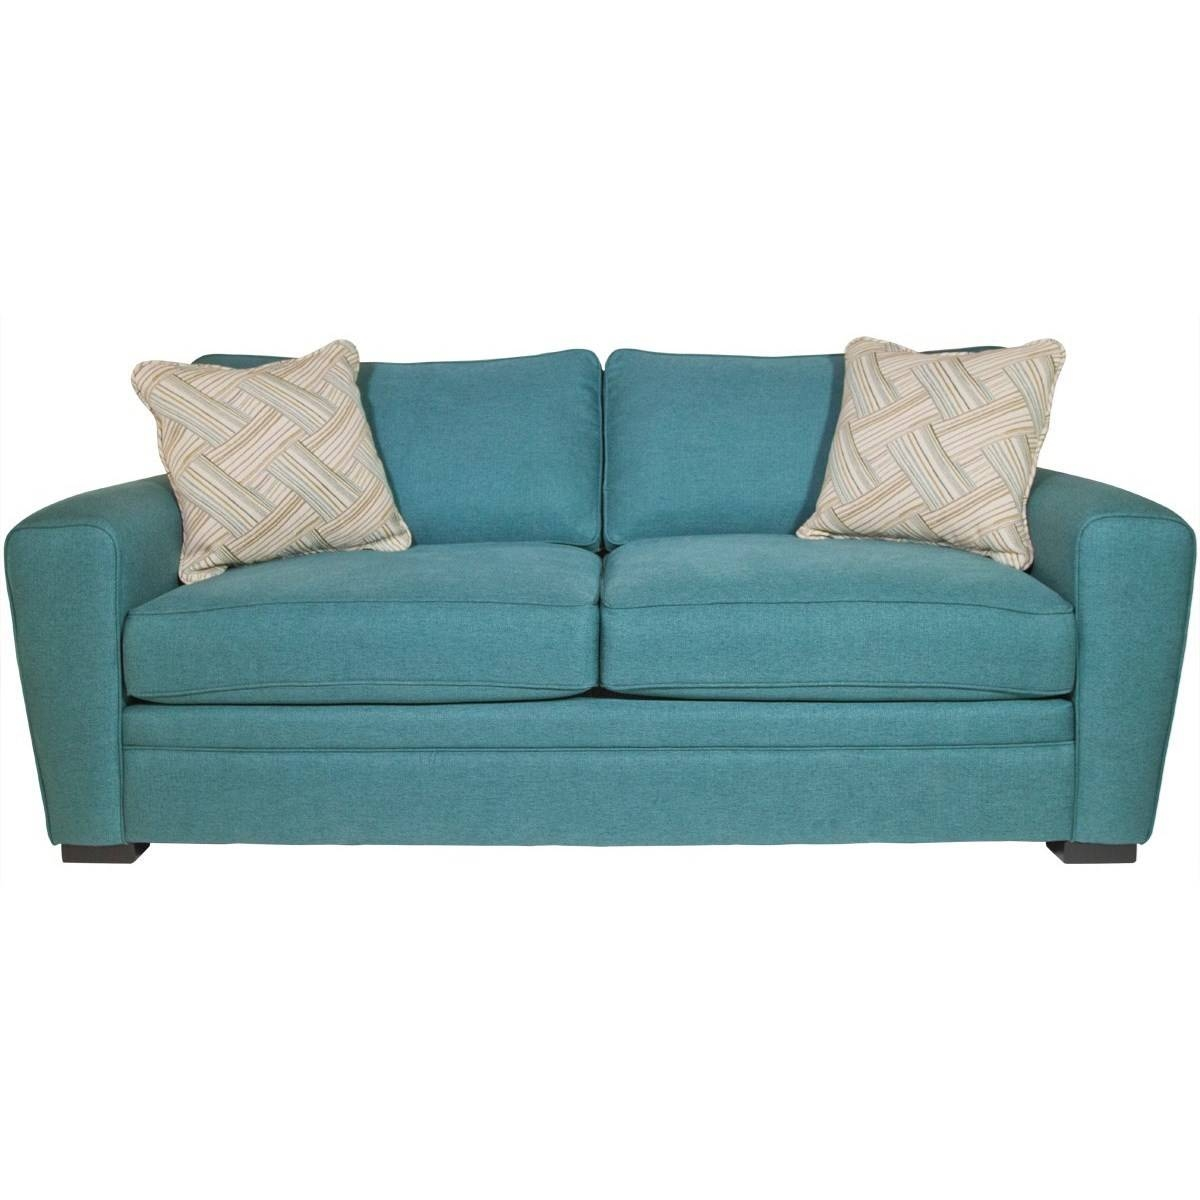 Excellent Sofa Sleepers Hawaii Oahu Hilo Kona Maui Sofa Sleepers Store  Intended With Oahu Furniture Store